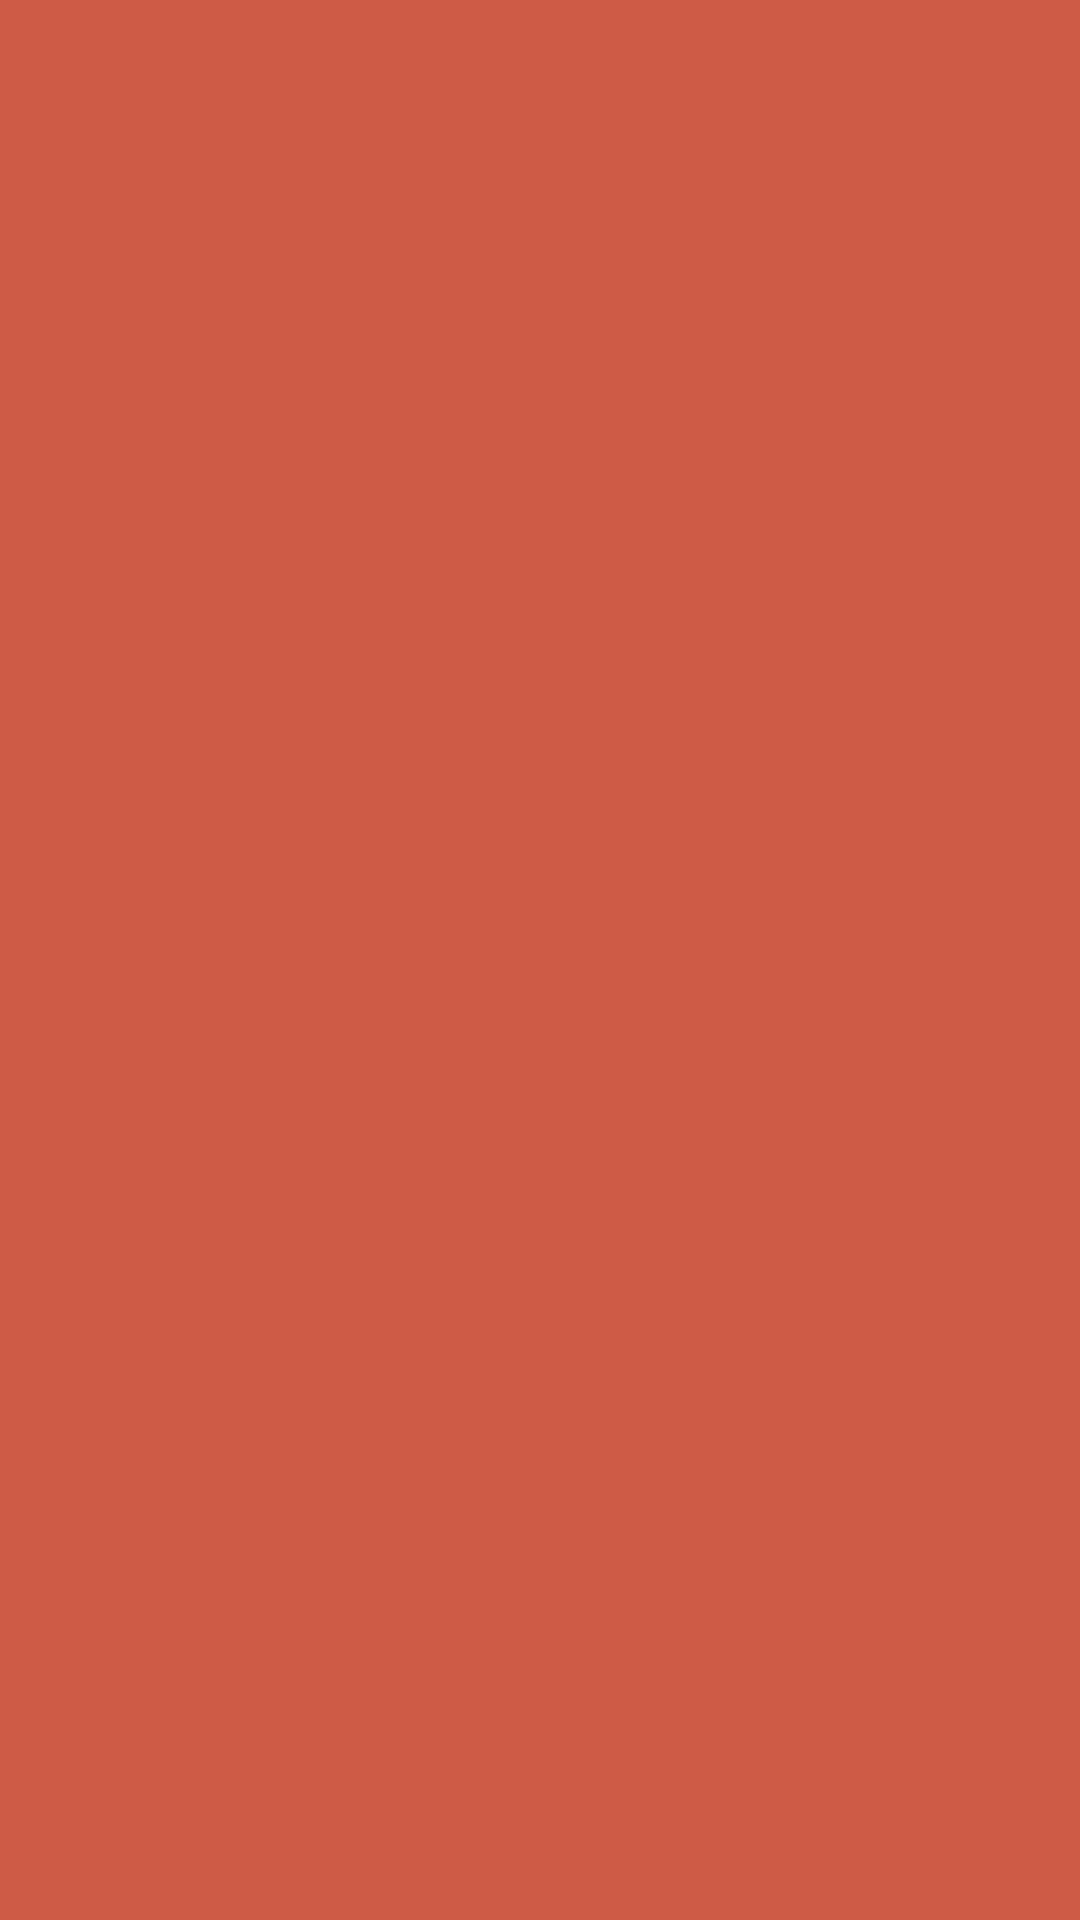 1080x1920 Dark Coral Solid Color Background